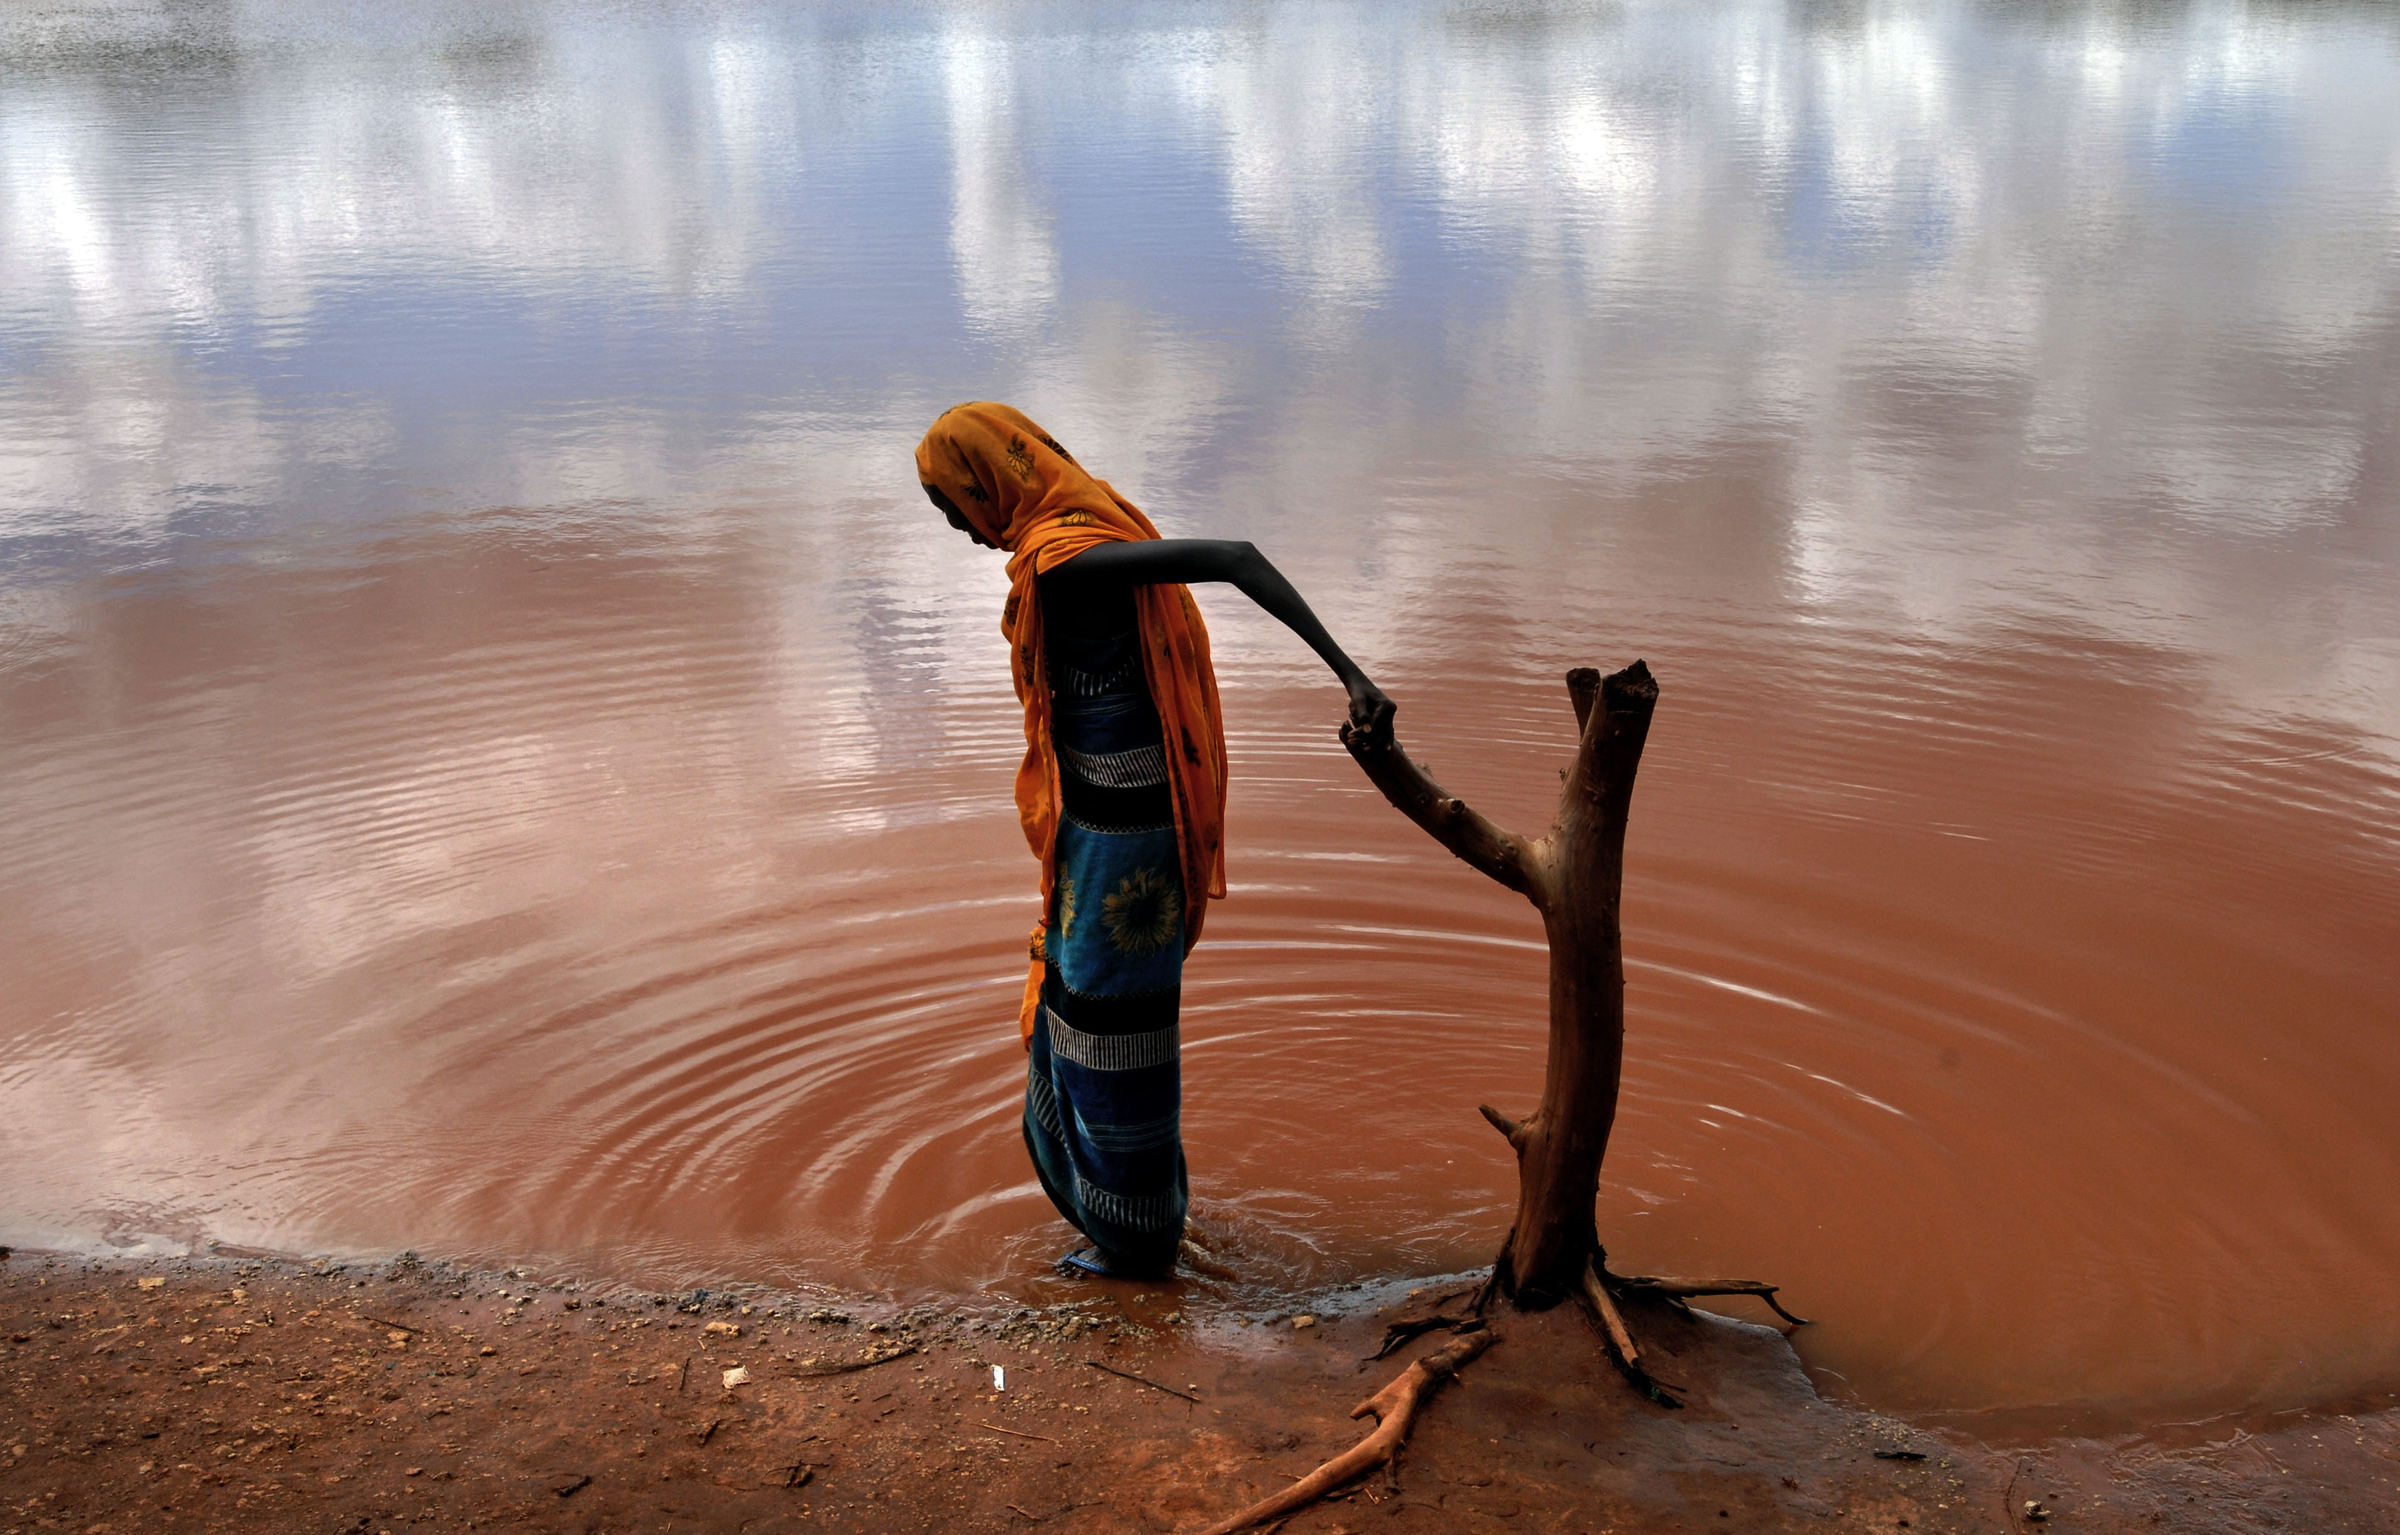 A villager fetches water from a polluted hole in the village of Dambas, 80 kilometers outside of Wajir, in northern Kenya. 2006   © Ami Vitale